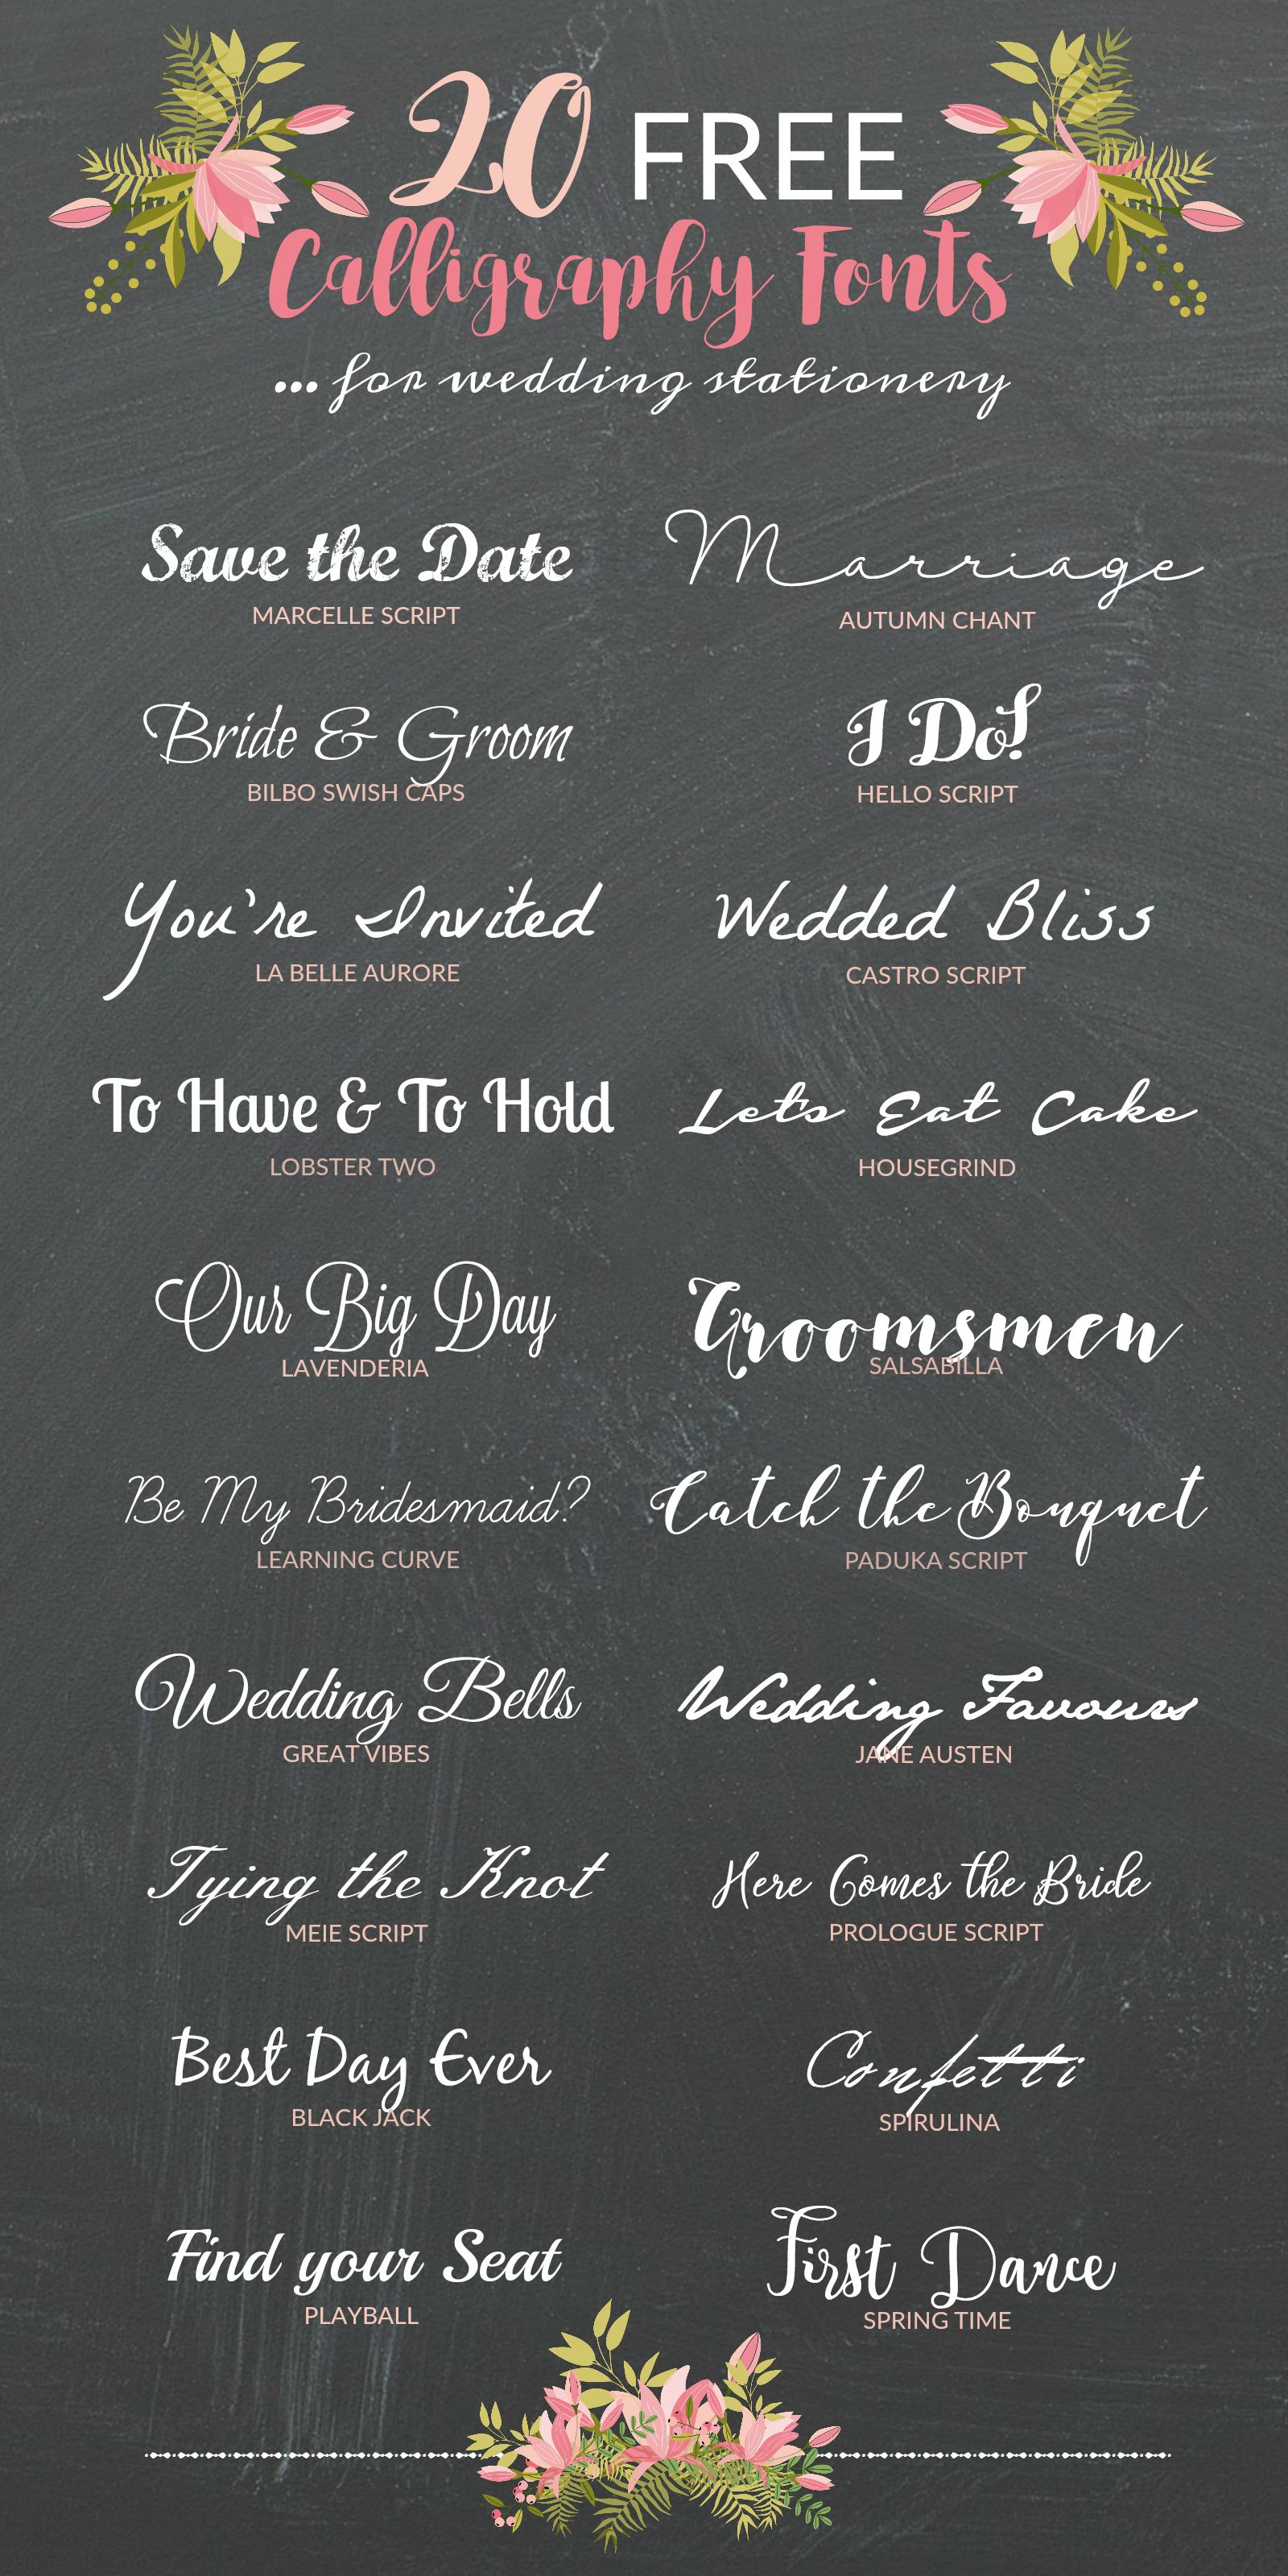 FREE Calligraphy Fonts for Drop Dead Gorgeous Wedding Stationery ...